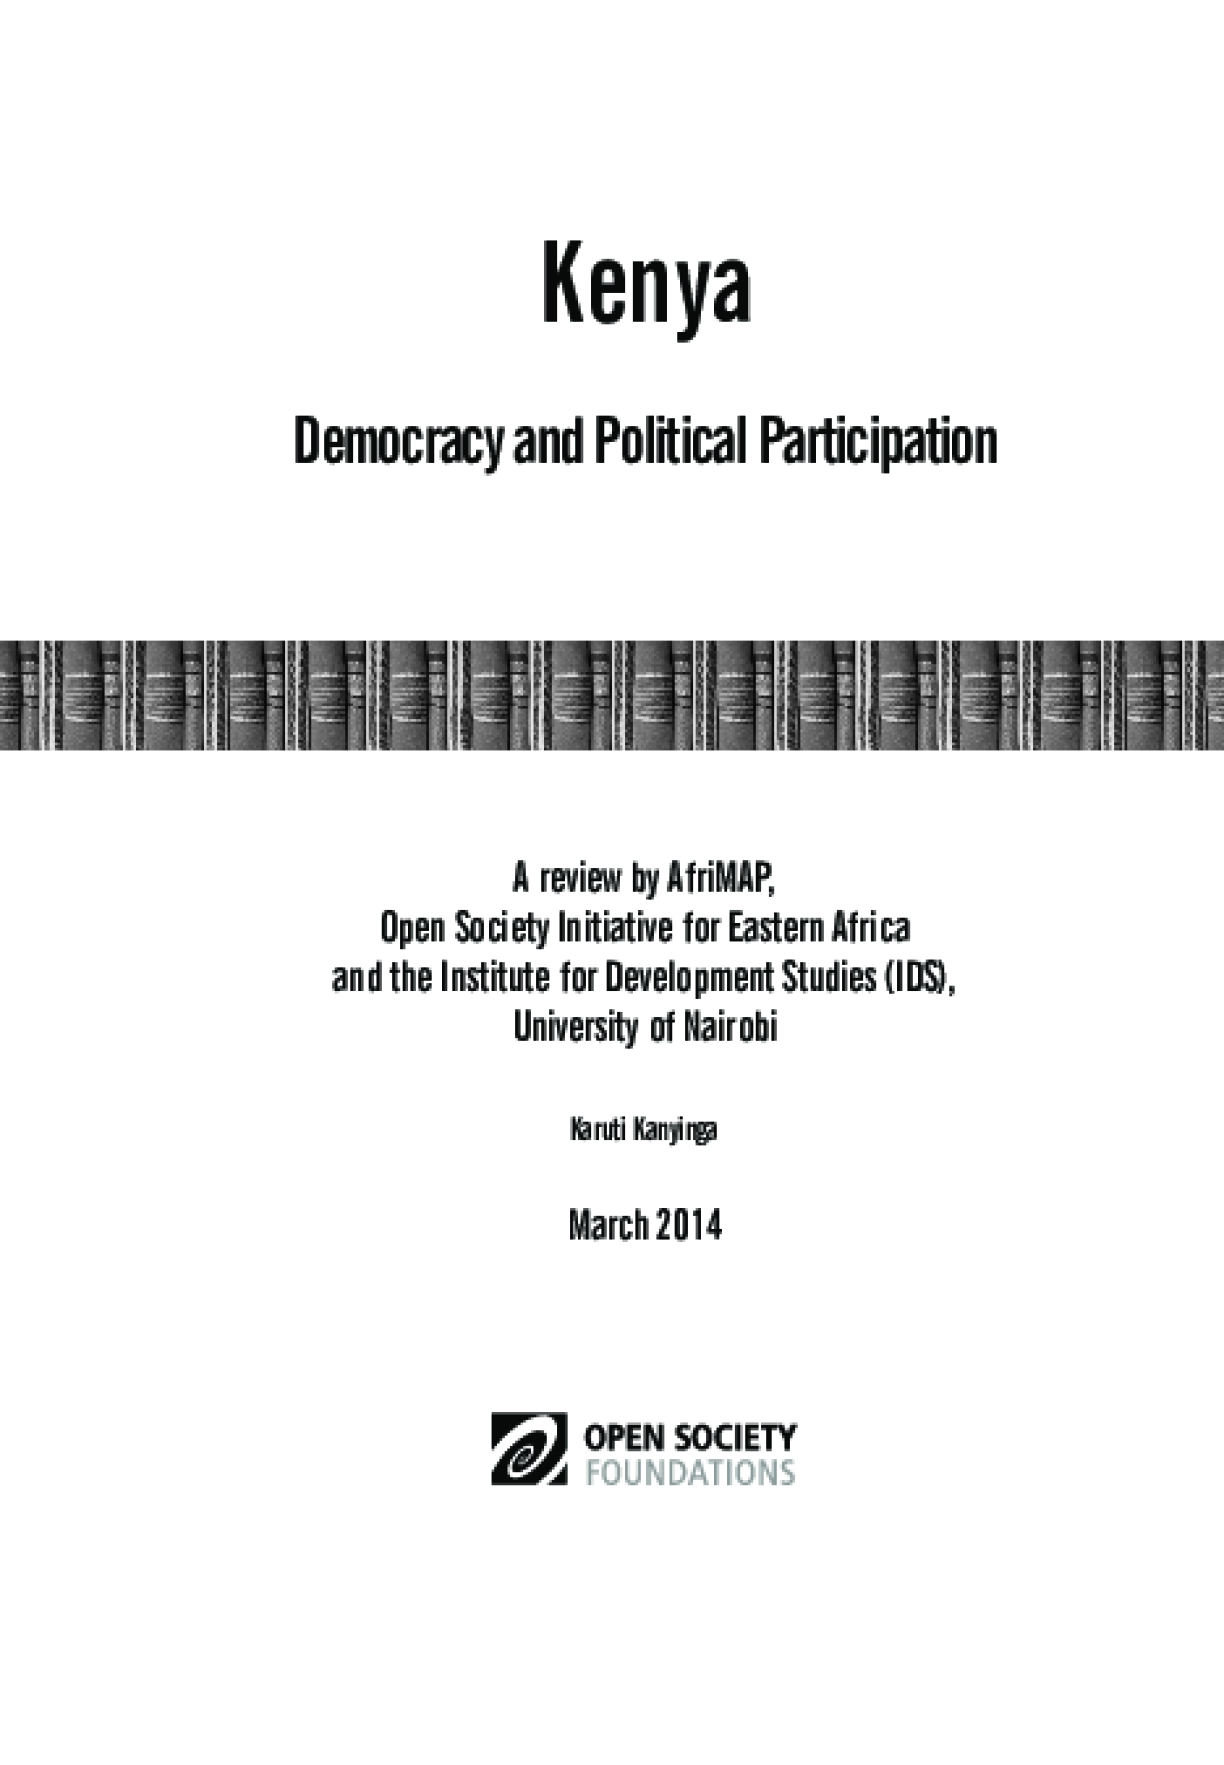 Kenya: Democracy and Political Participation